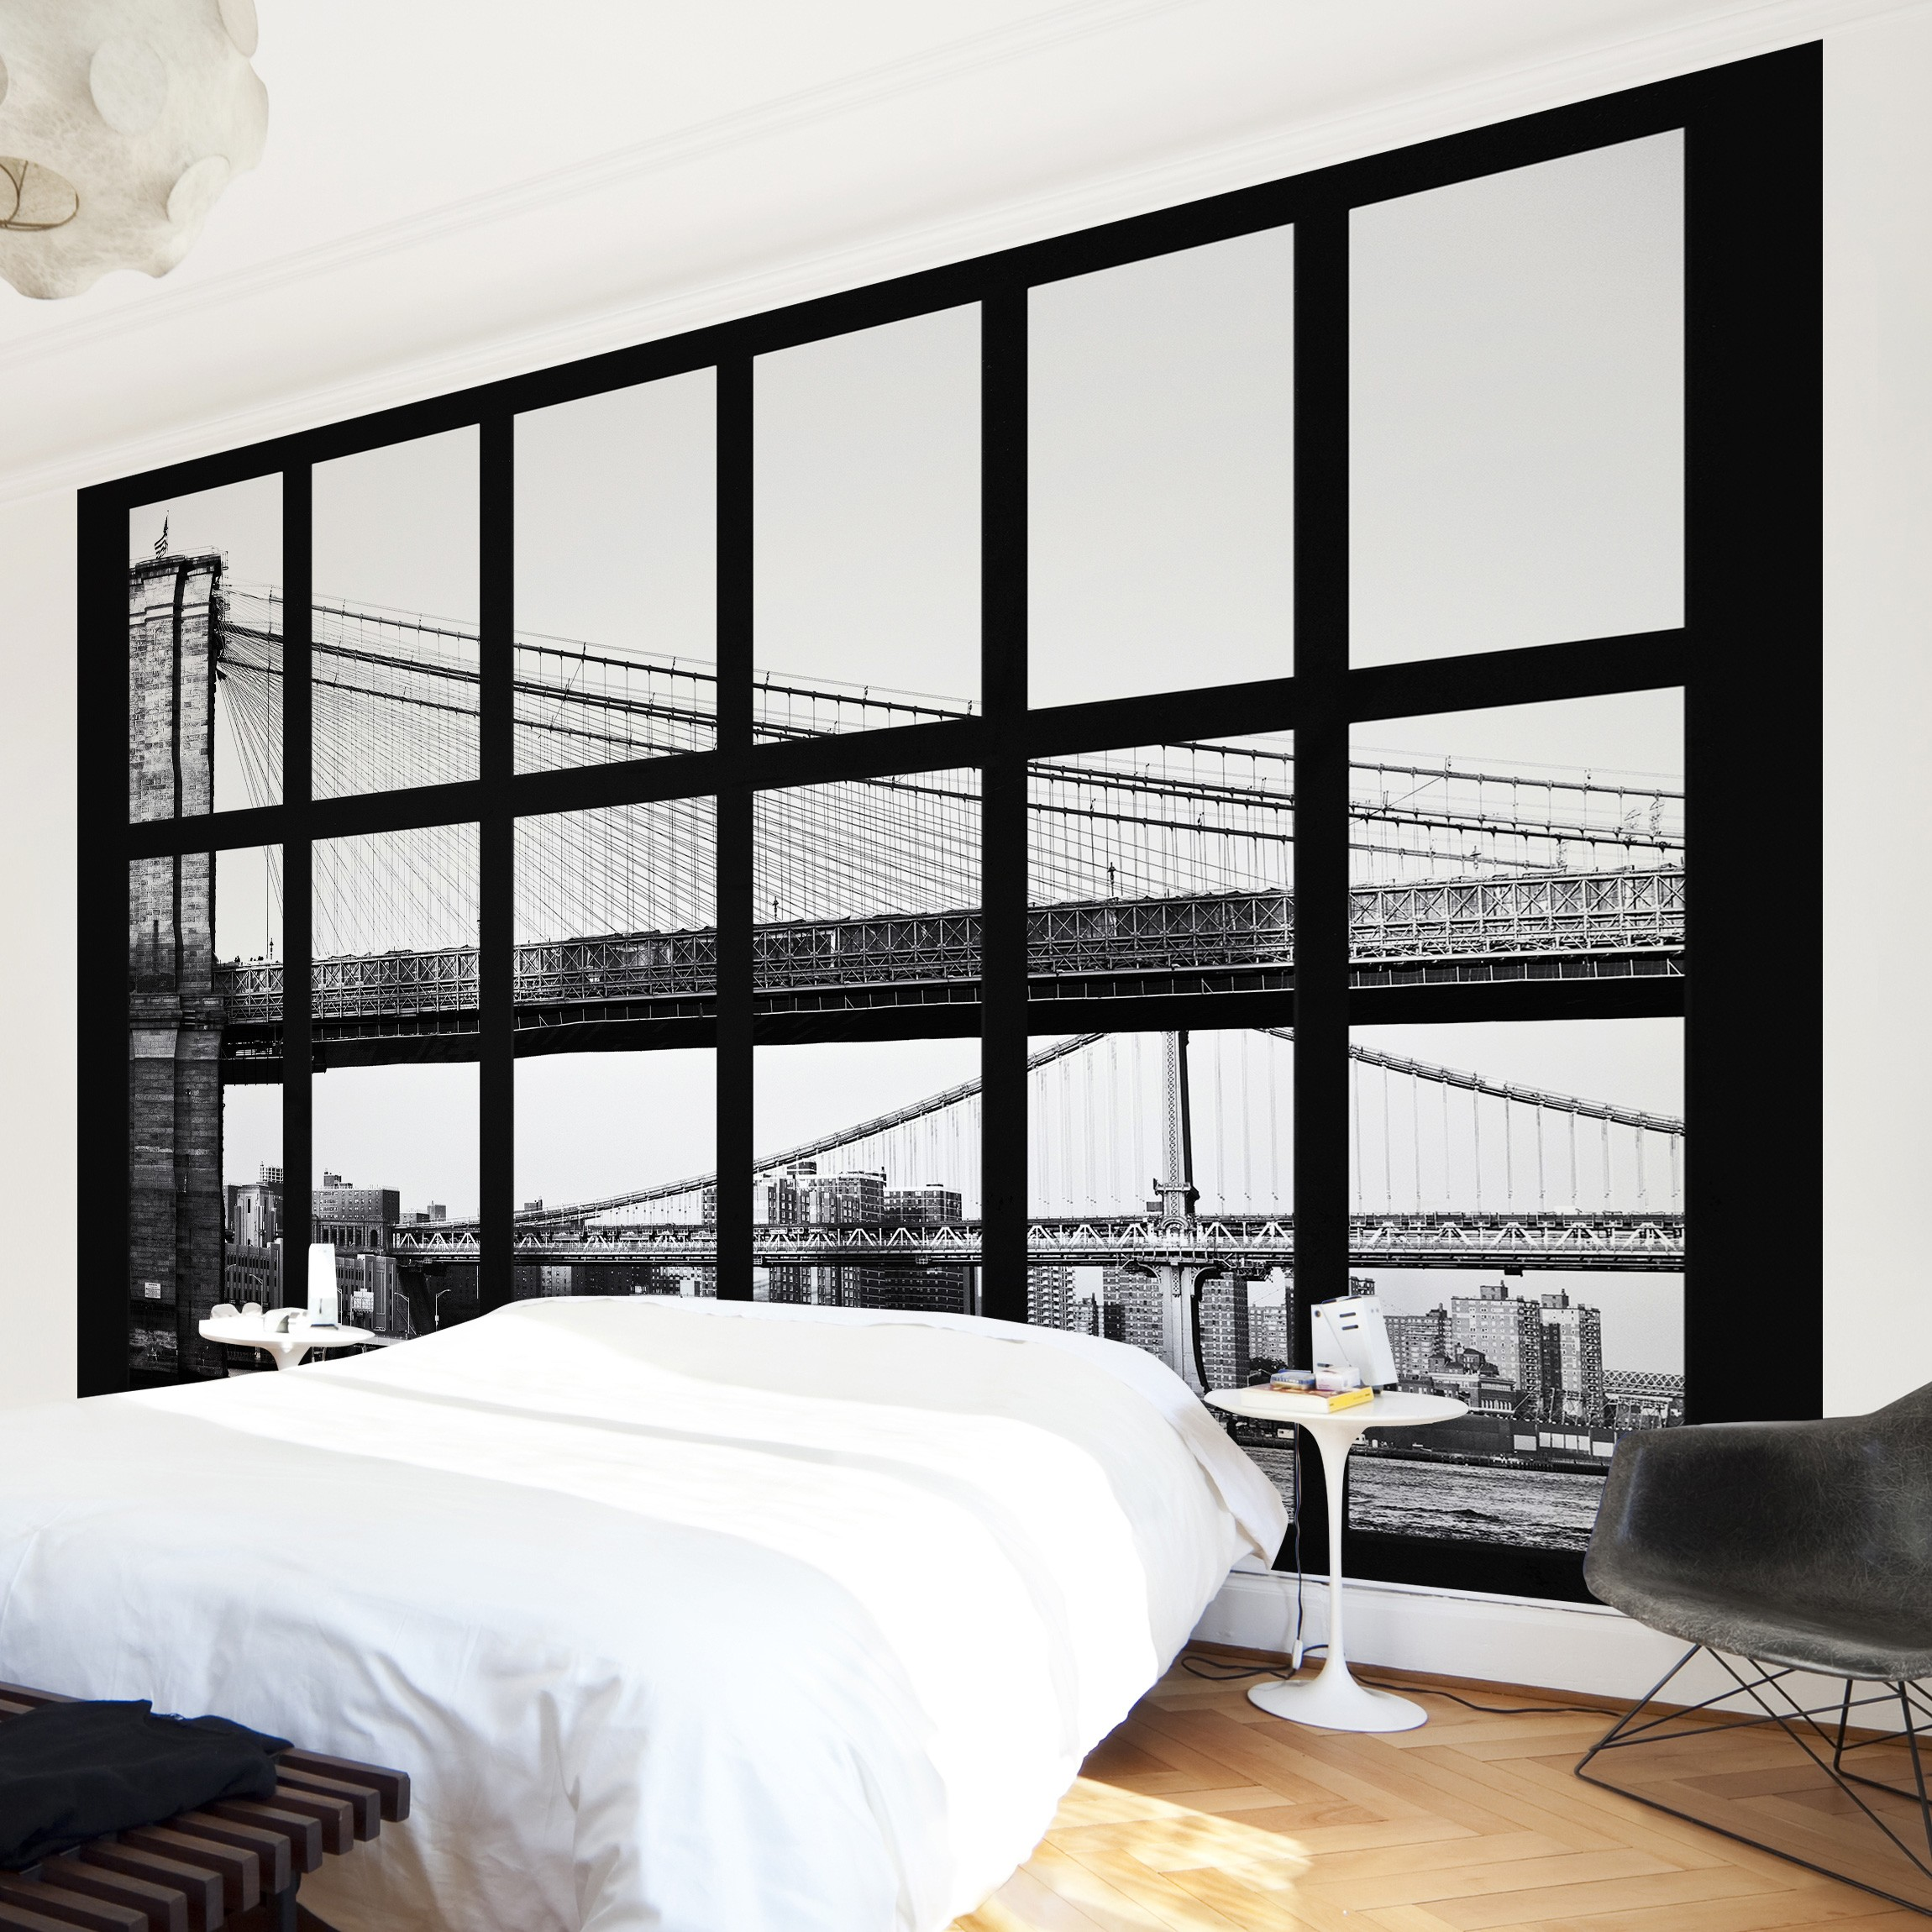 new york fototapete selbstklebend fenster br cken new york. Black Bedroom Furniture Sets. Home Design Ideas